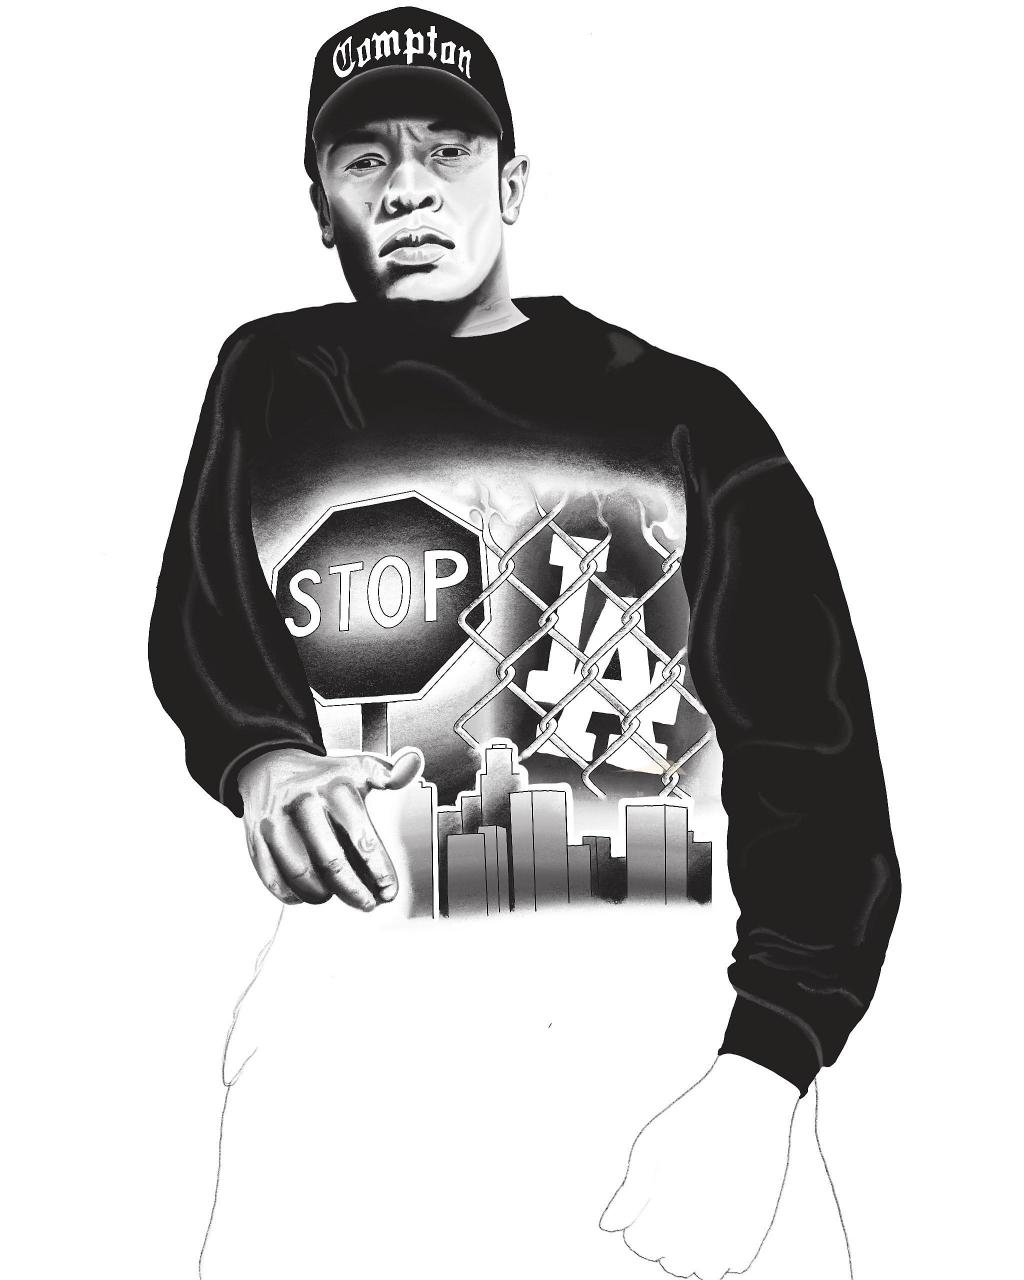 Progress shot on a Dr Dre piece iv been putting together...still unsure if it really works,what do you guys do think?